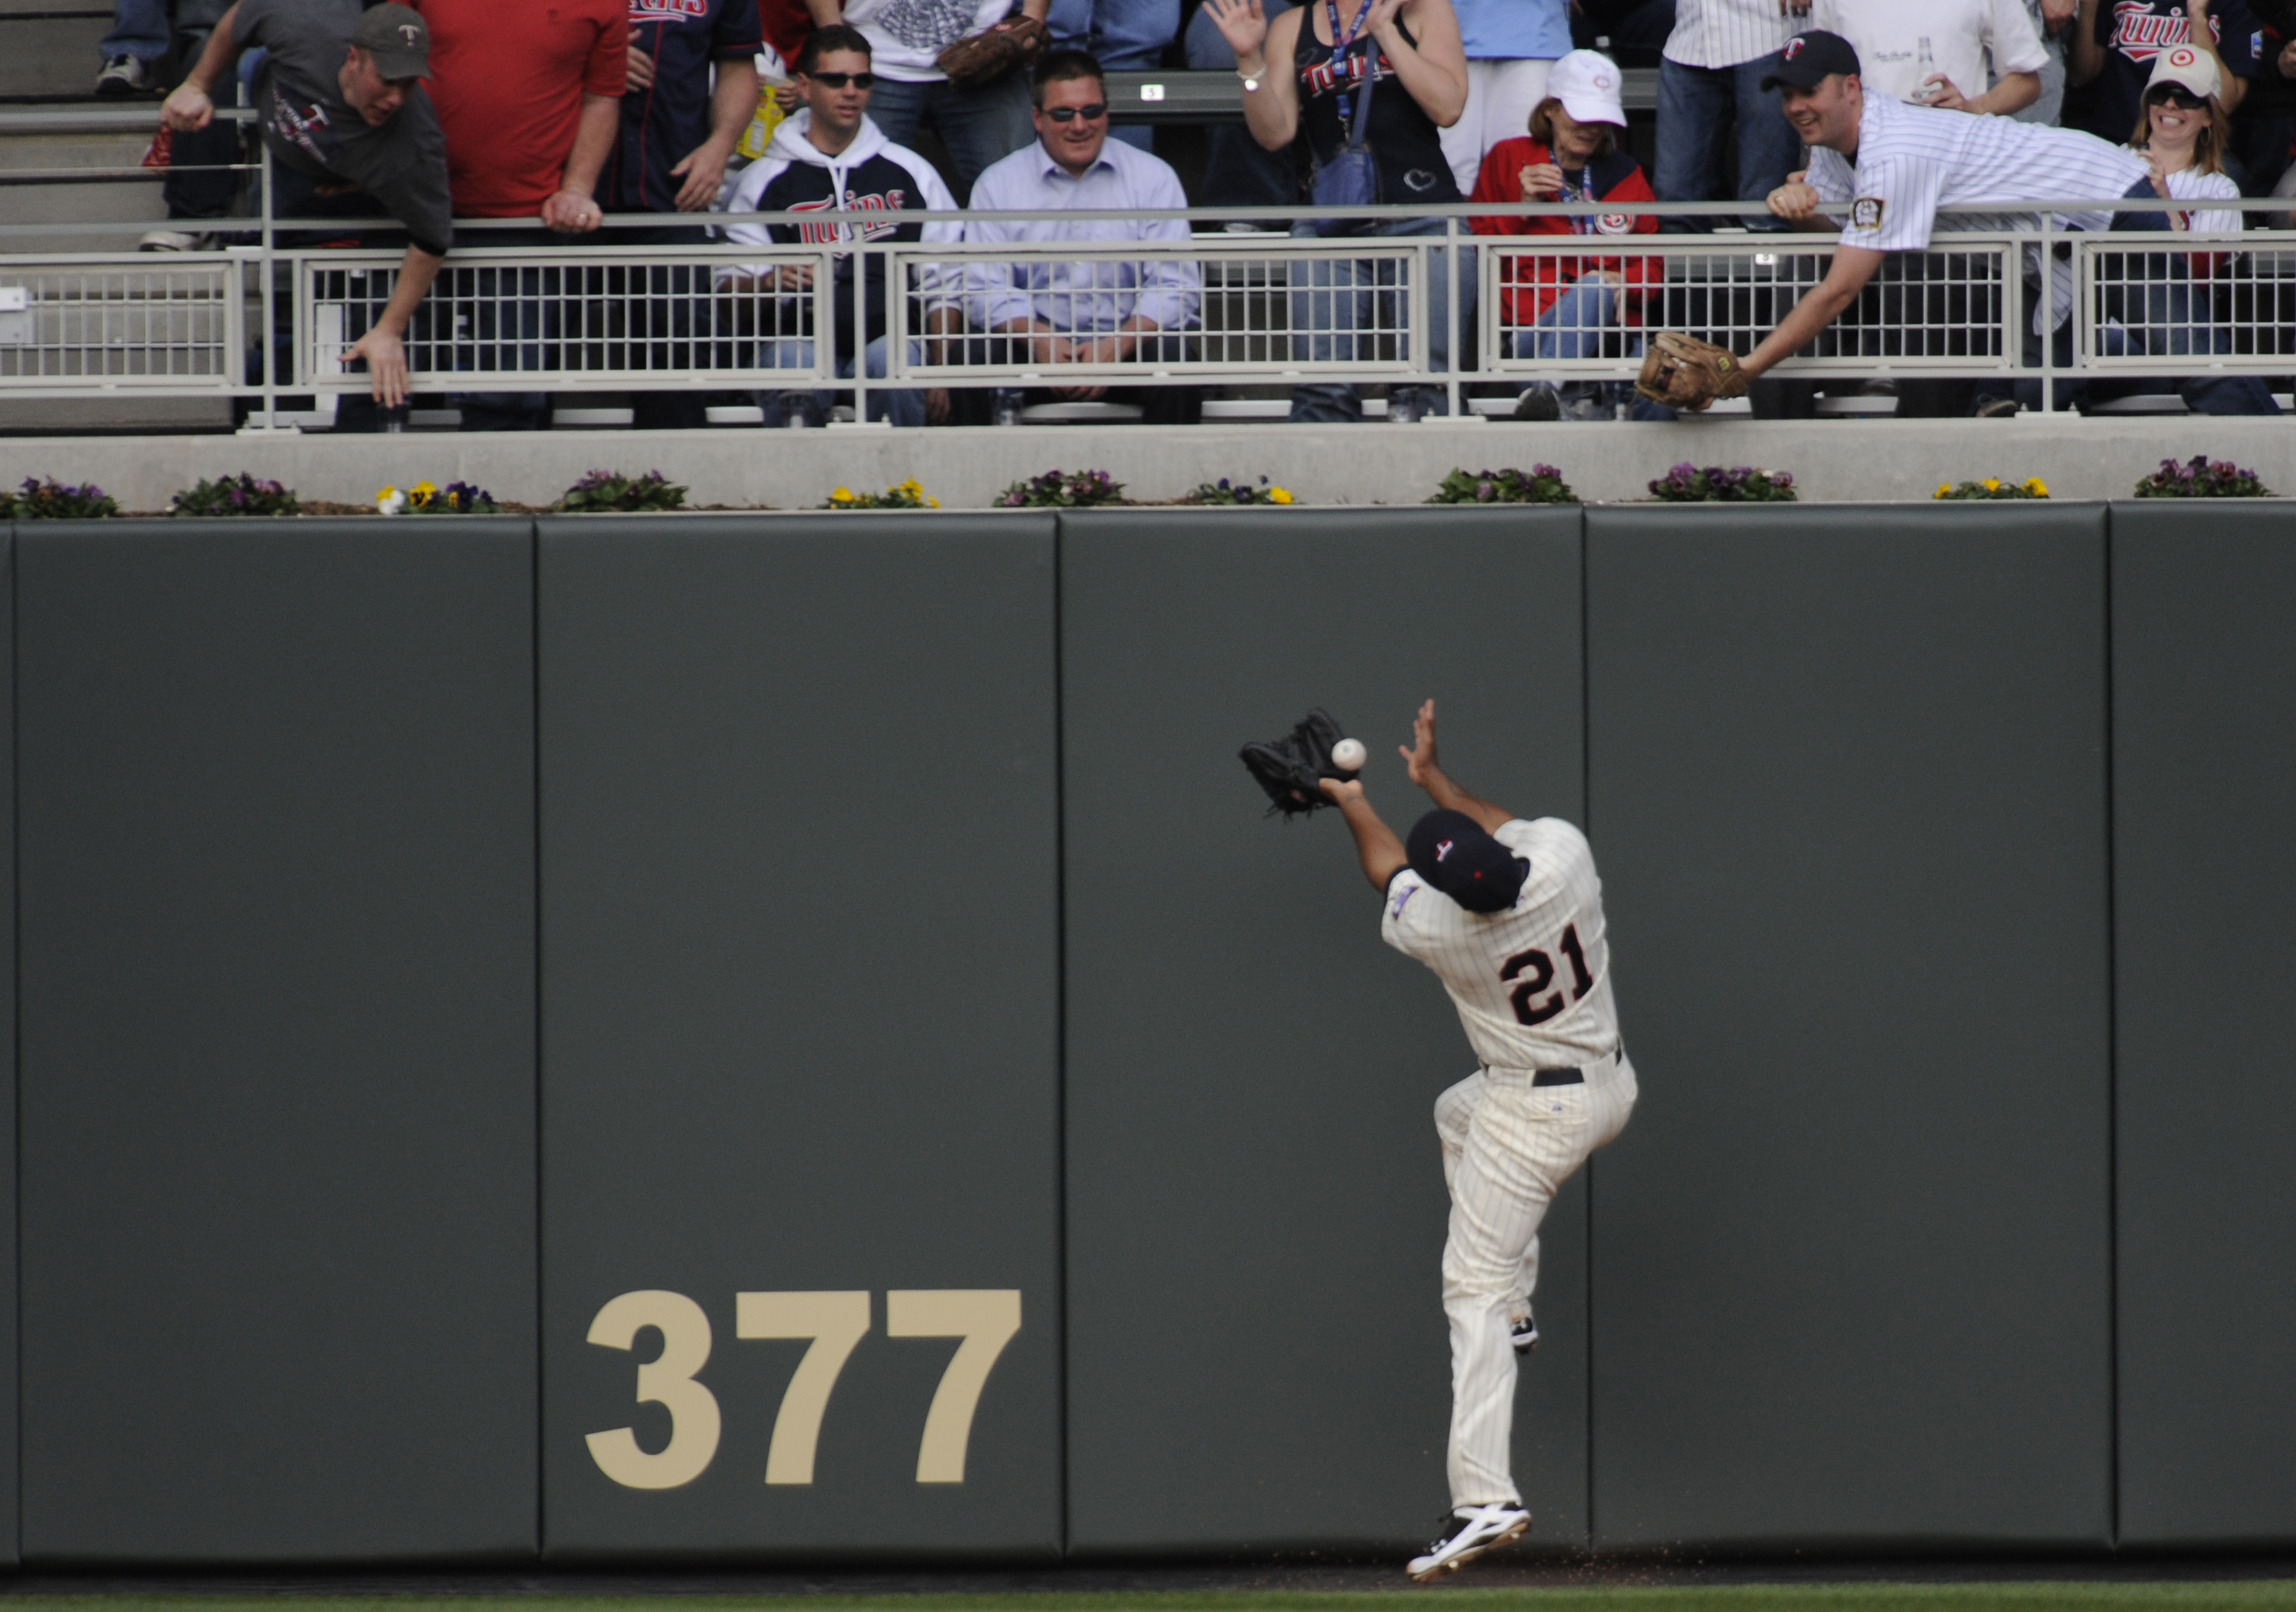 MINNESOTA, MN - APRIL 12: Delmon Young #21 of the Minnesota Twins bobbles the ball allowing Kevin Youkilis #20 of the Boston Red Sox to score in the fourth inning against the Boston Red Sox during the Twins home opener at Target Field on April 12, 2010 in